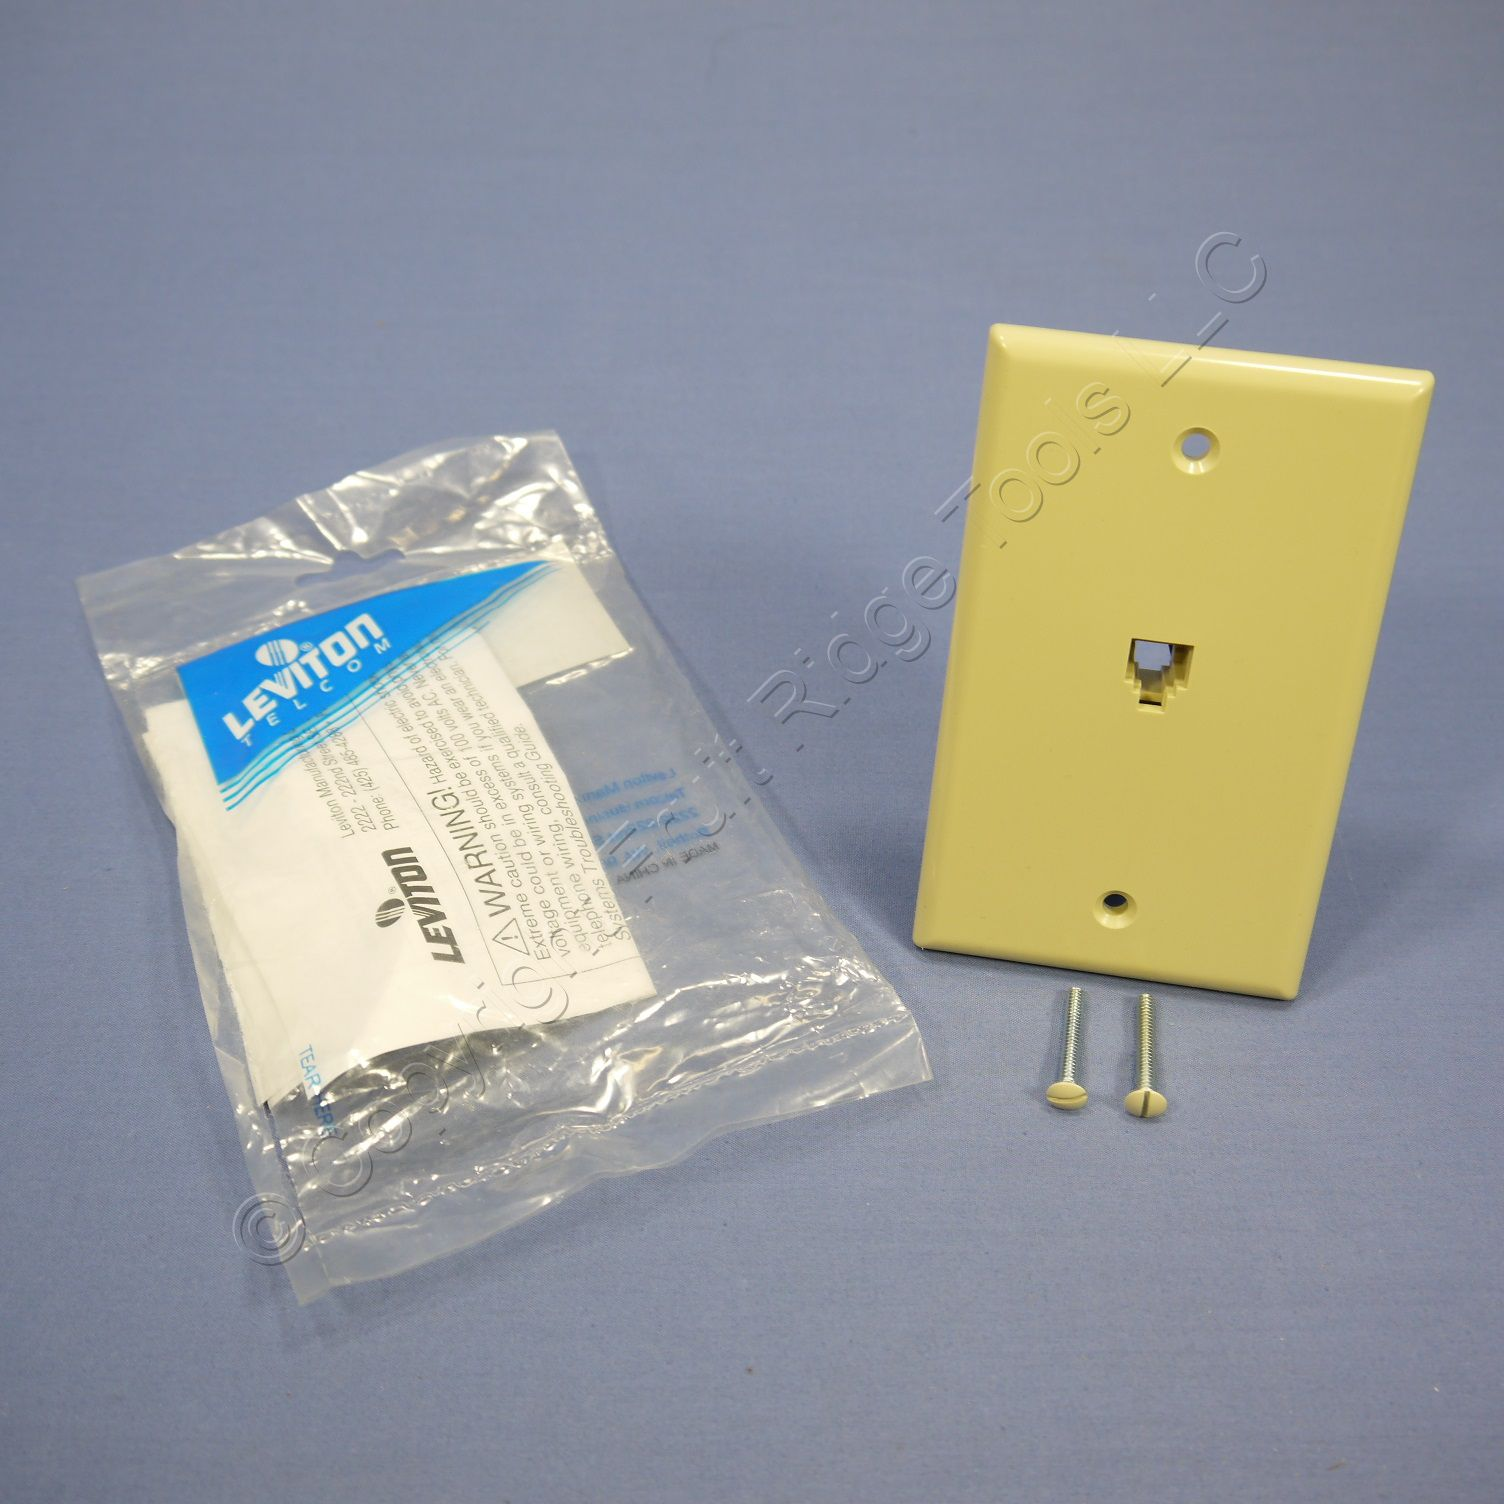 🏠 🔌 shop leviton ivory type 625b4 telephone 4-wire phone jack wall plate  6p4c 4625b-44i | fruit ridge tools